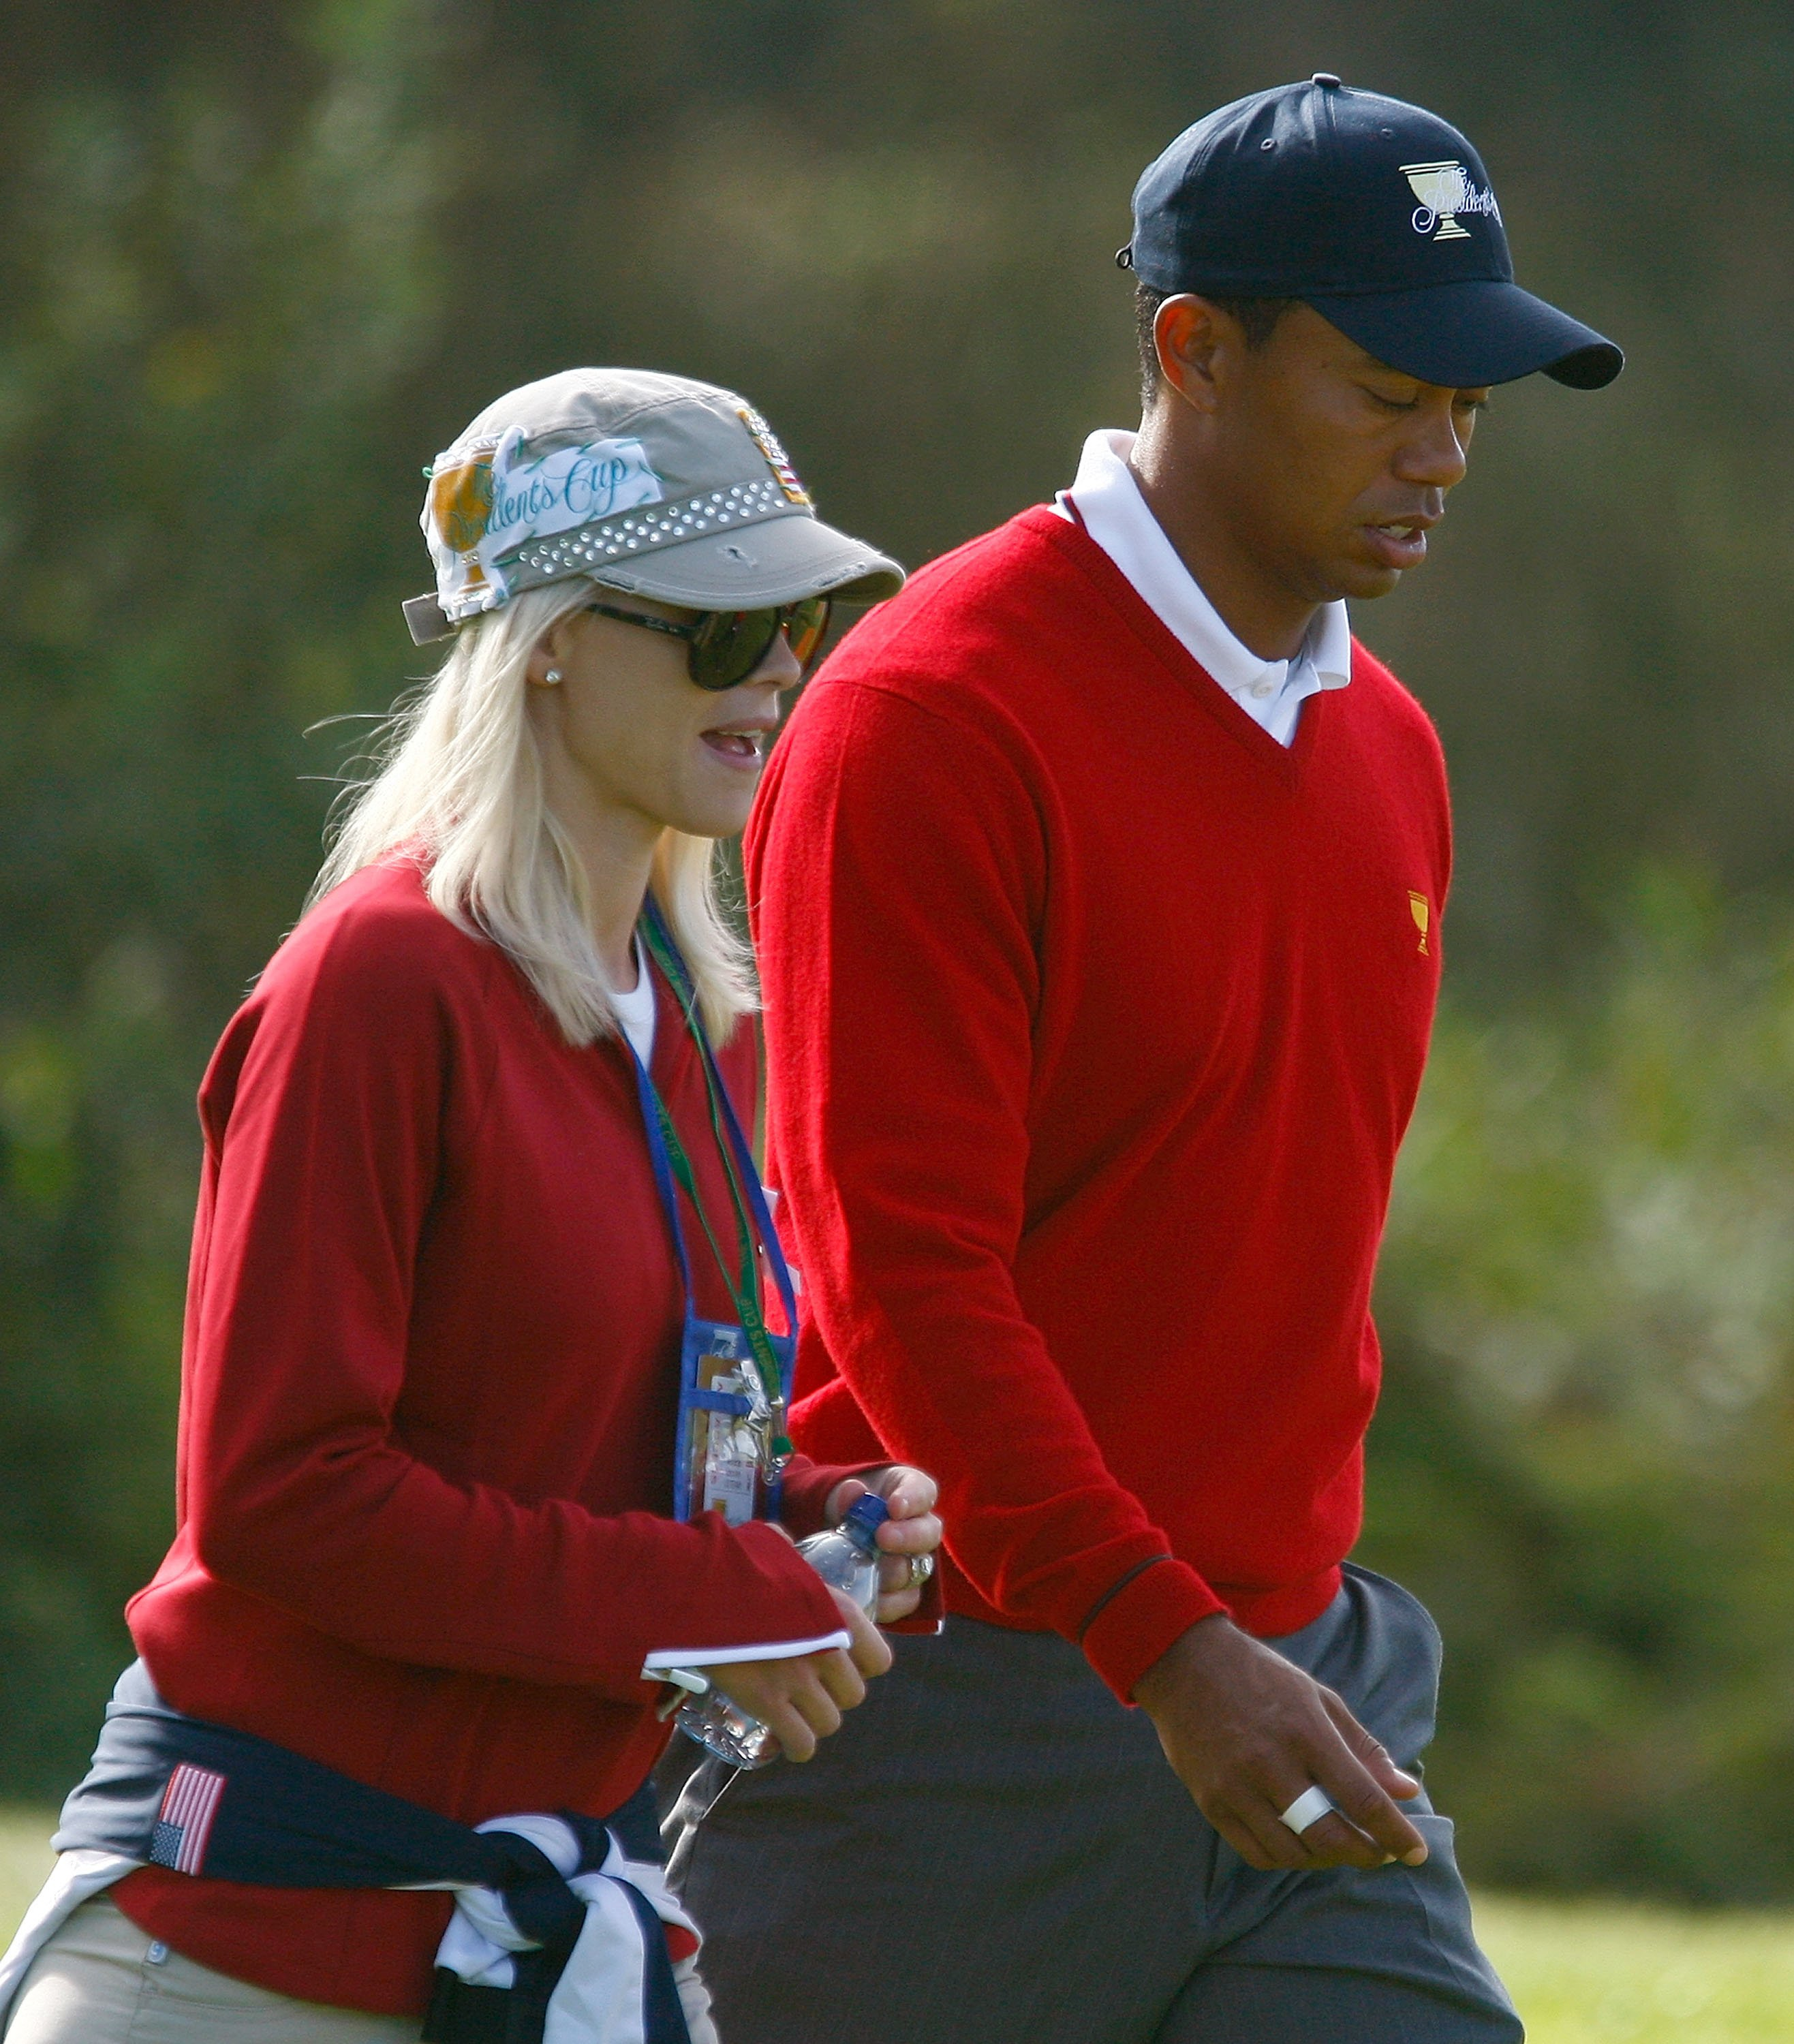 Image Credits: Getty Images / Scott Halleran | Tiger Woods of the USA Team walks with his wife Elin during the Day One Foursome Matches of The Presidents Cup at Harding Park Golf Course on October 8, 2009 in San Francisco, California.